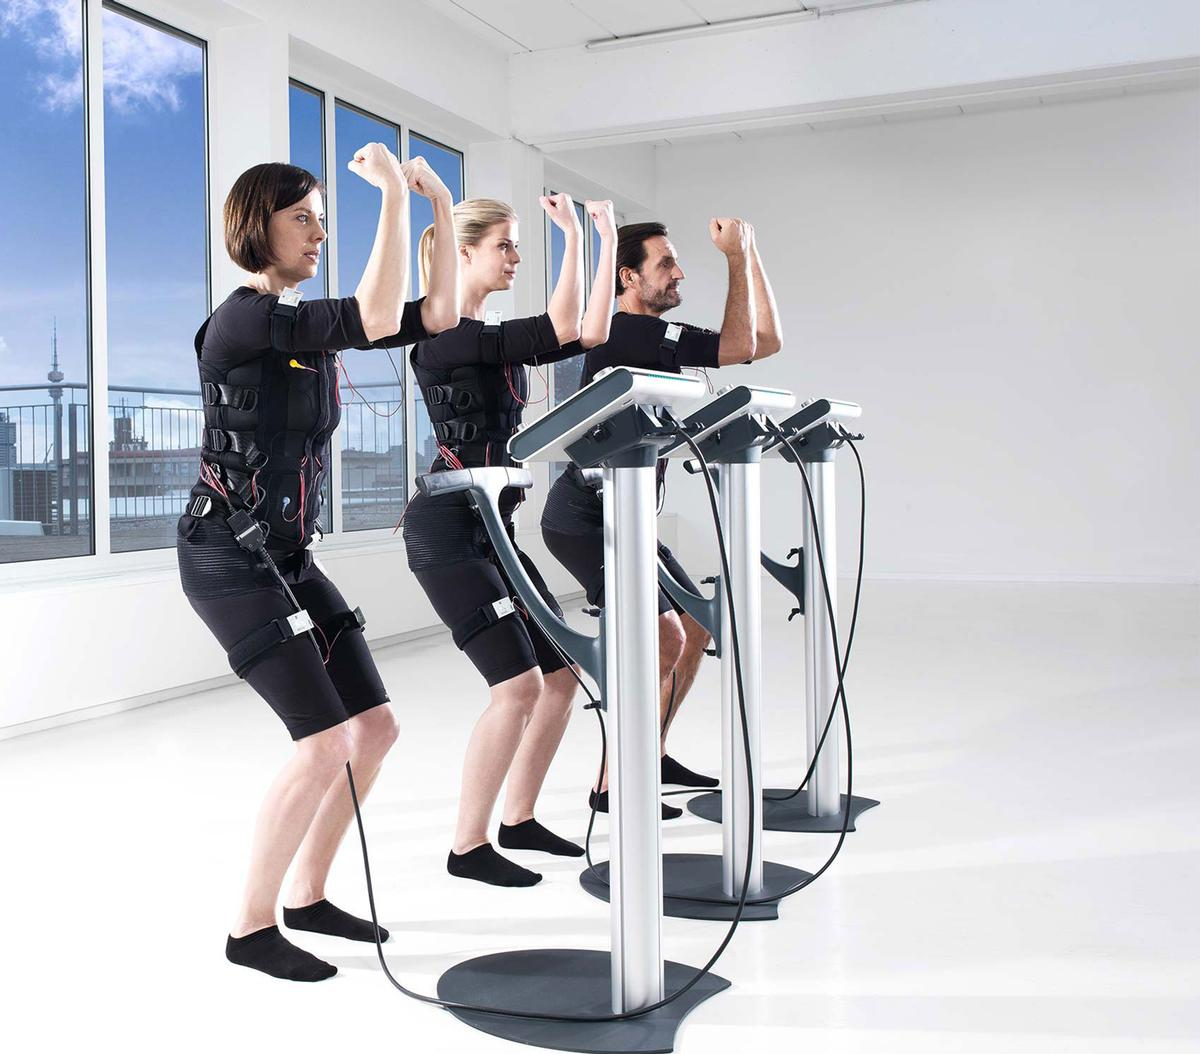 The Miha Bodytec system was developed by German engineers and is now being sold in more than 30 countries